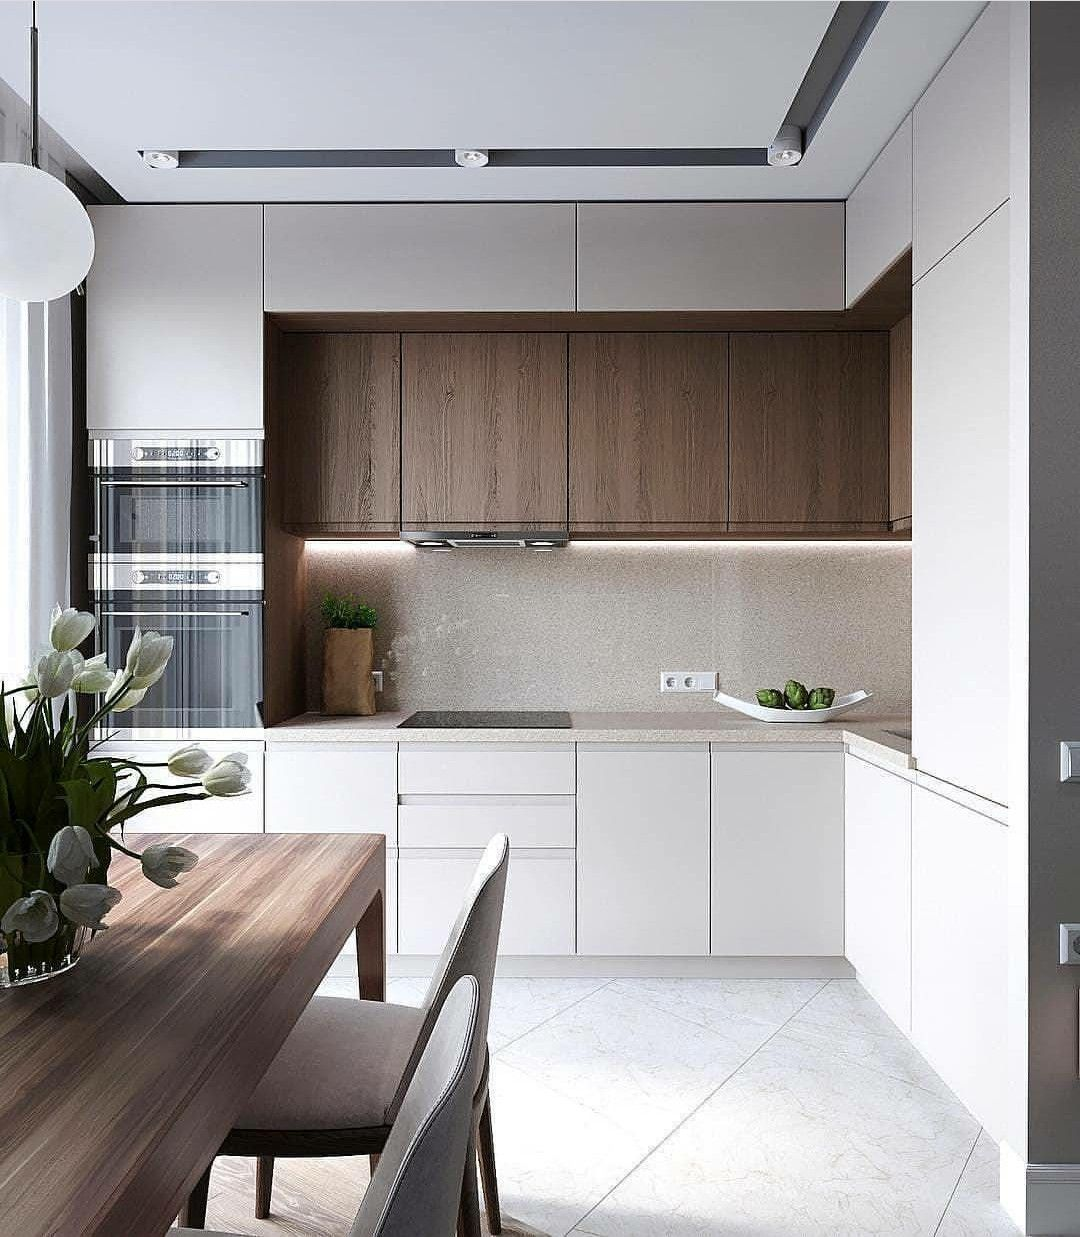 Find This Pin And More On Kitchens By Ezzatcircle.